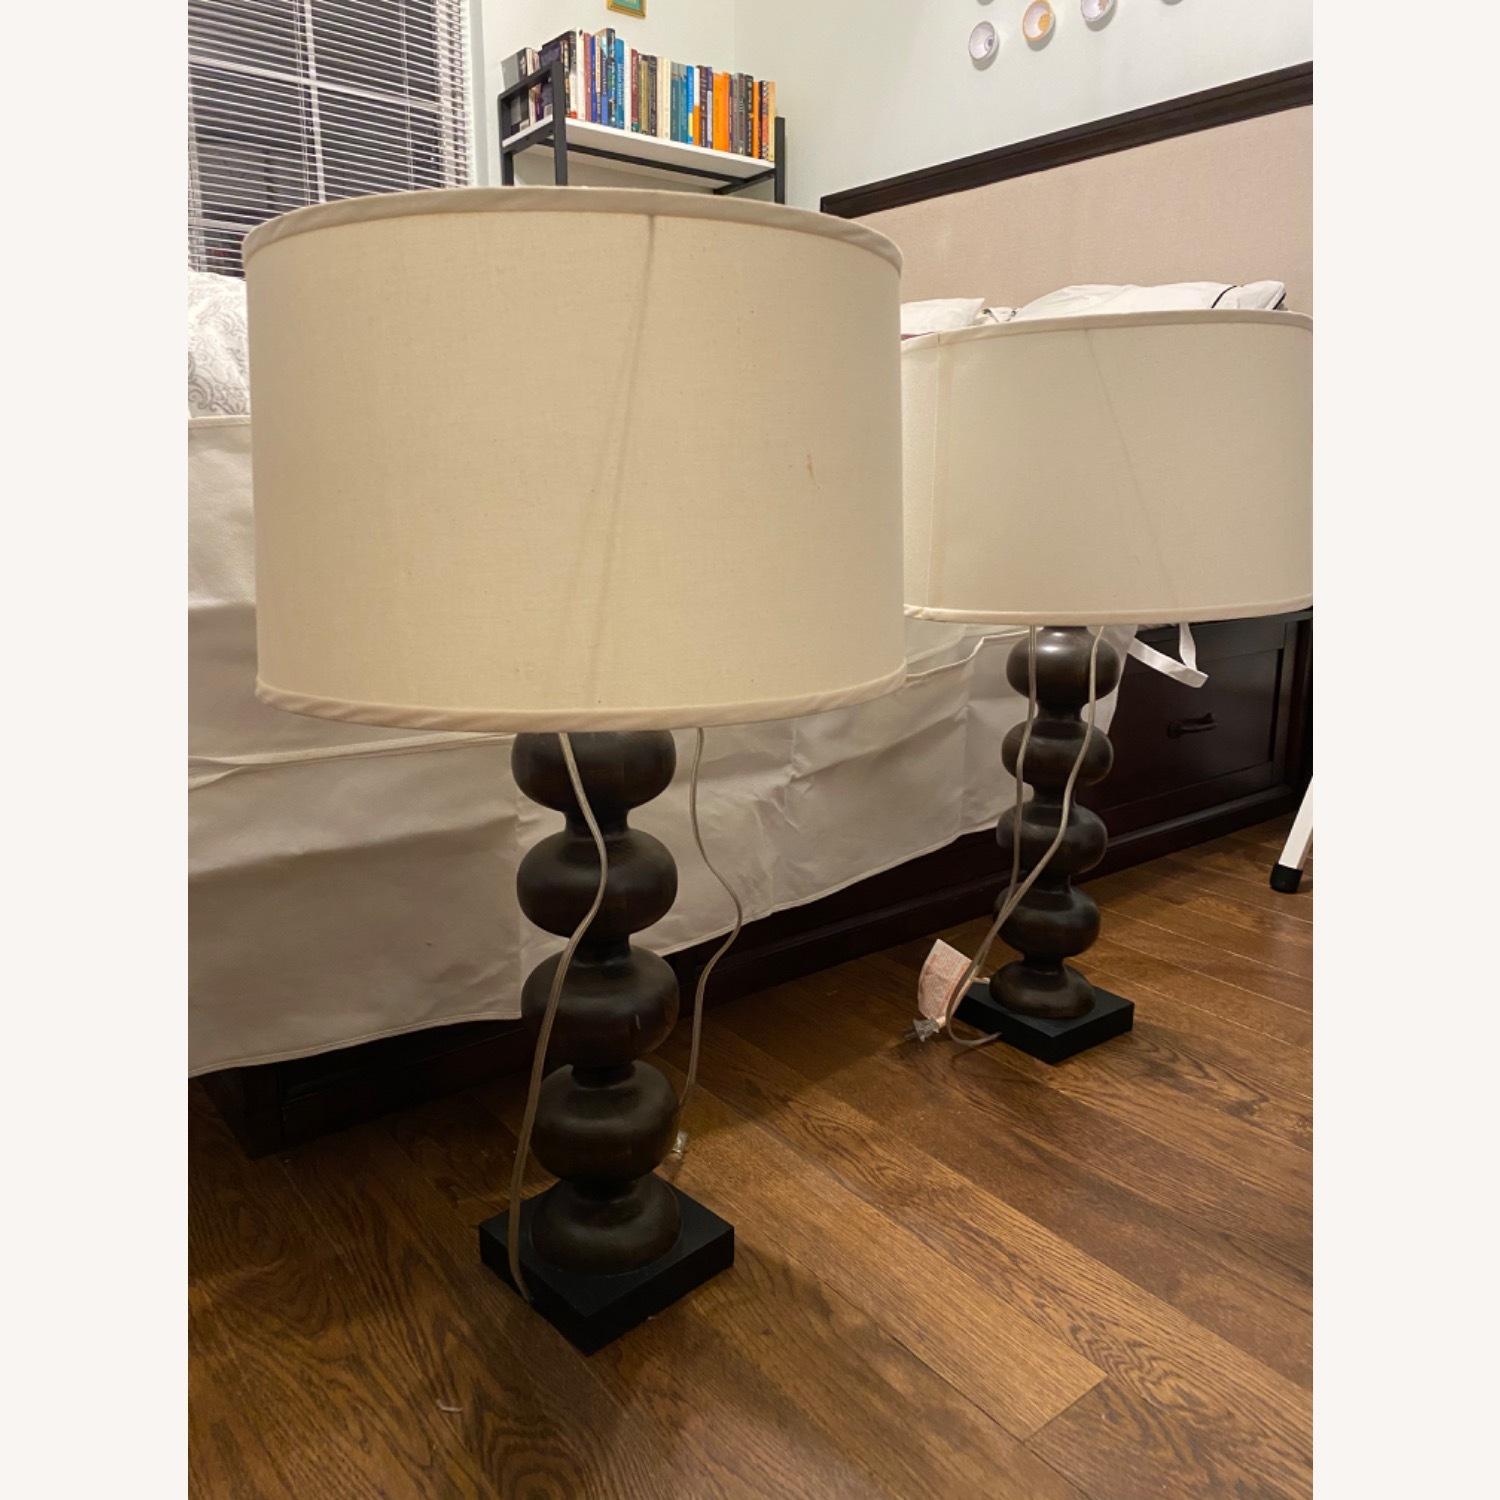 Pottery Barn Hand Turned 31 Tall Wooden Lamps (2) - image-1